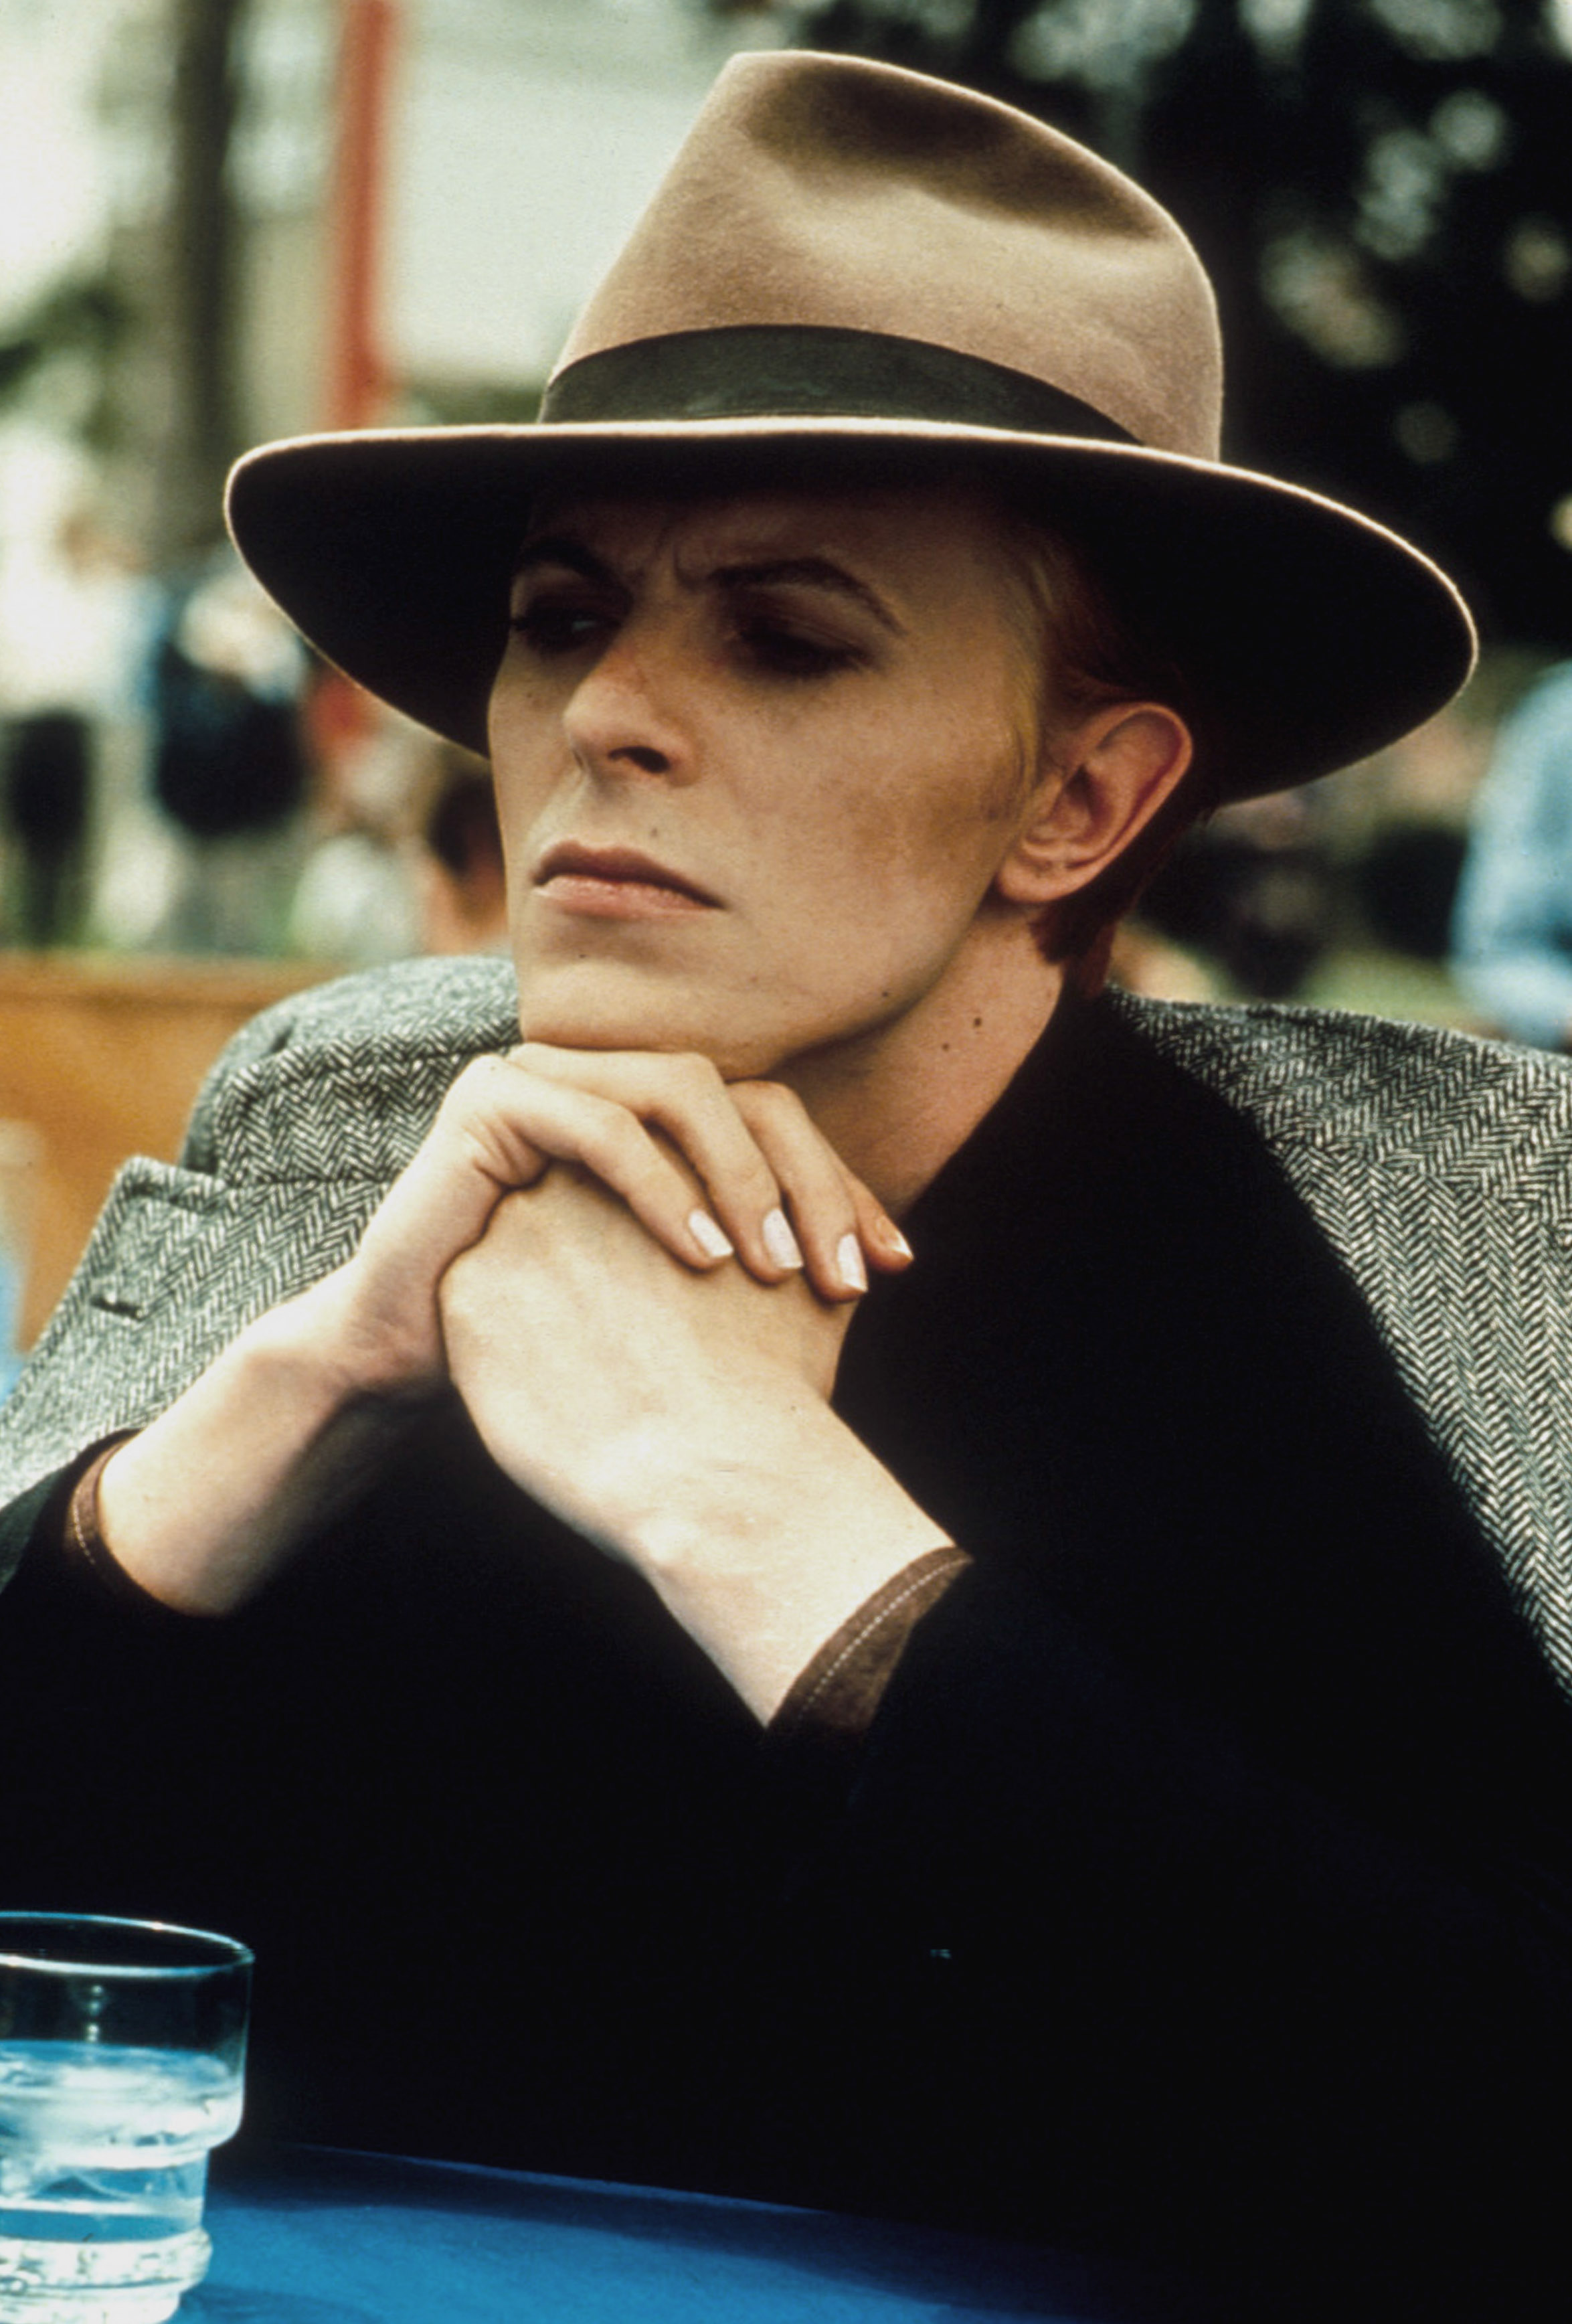 The Man Who Fell To Earth Erased Time And Space And Ended An